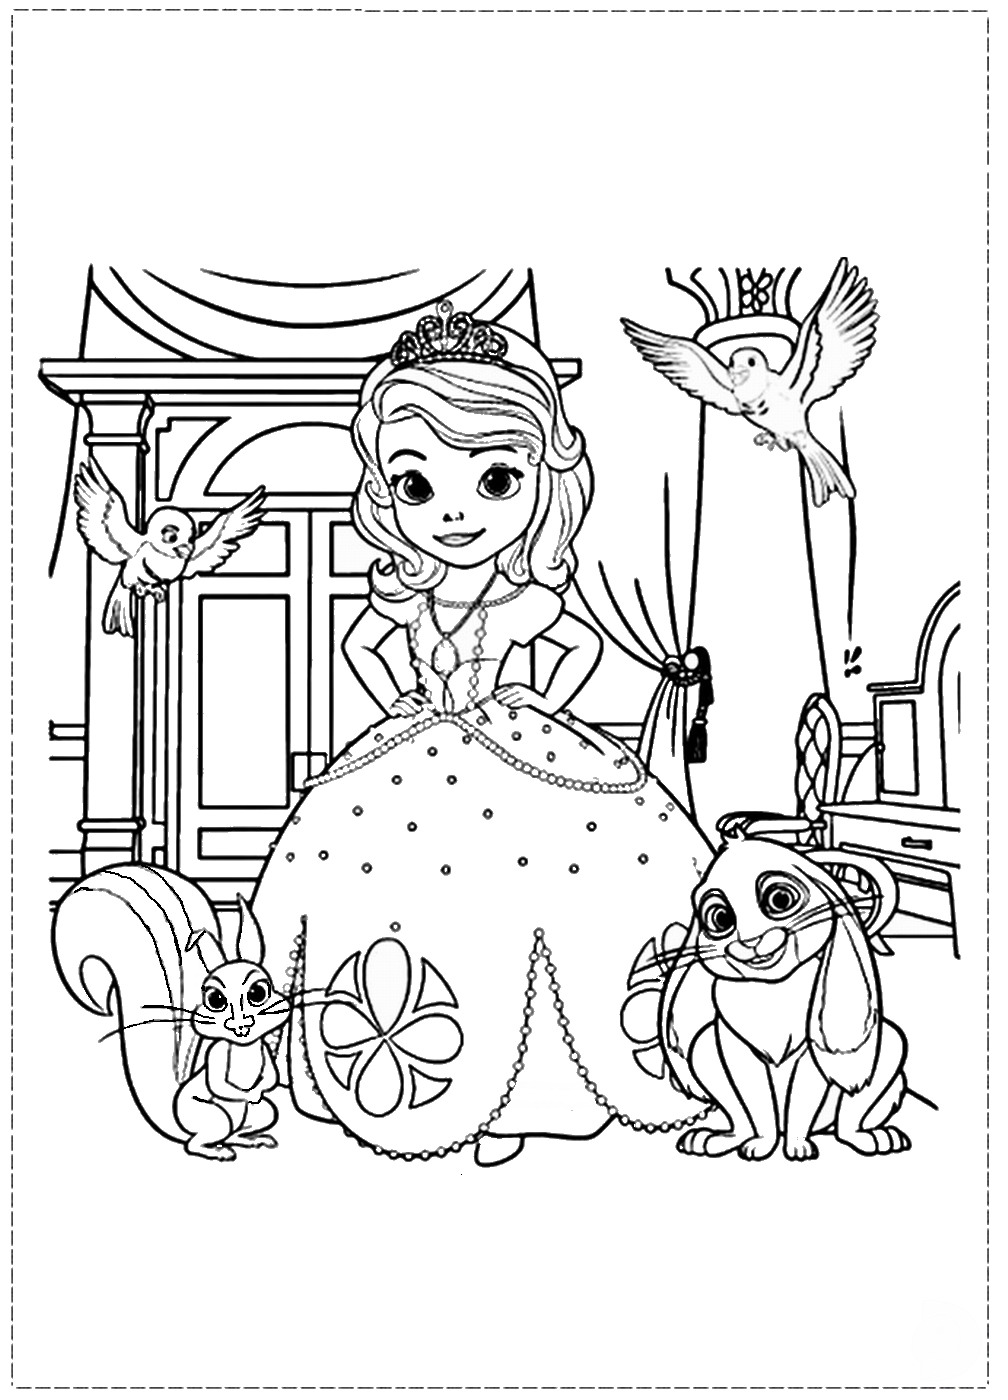 sofia the first free printable coloring pages